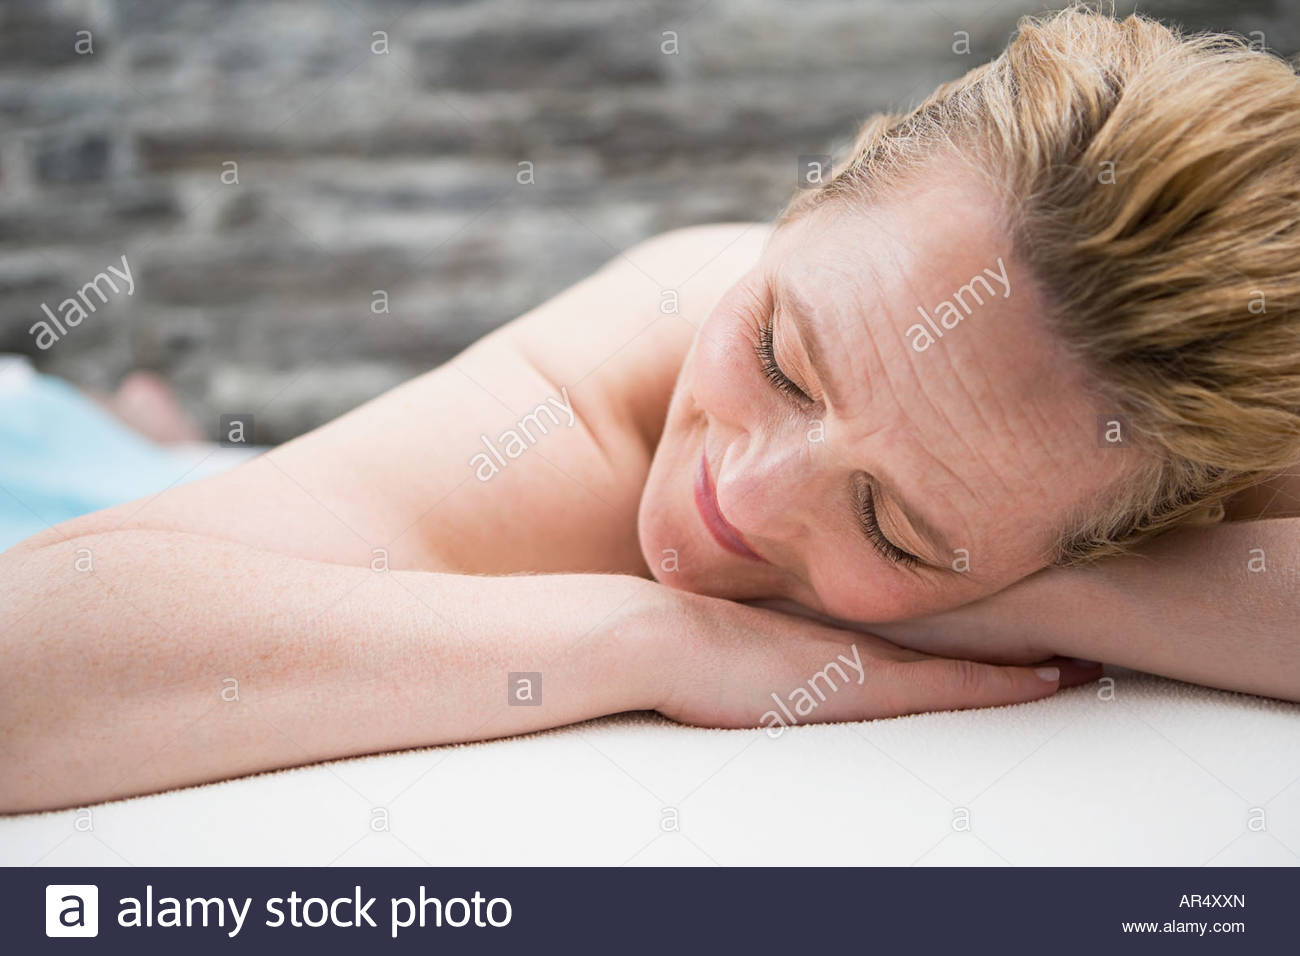 Woman sleeping on a treatment couch - Stock Image